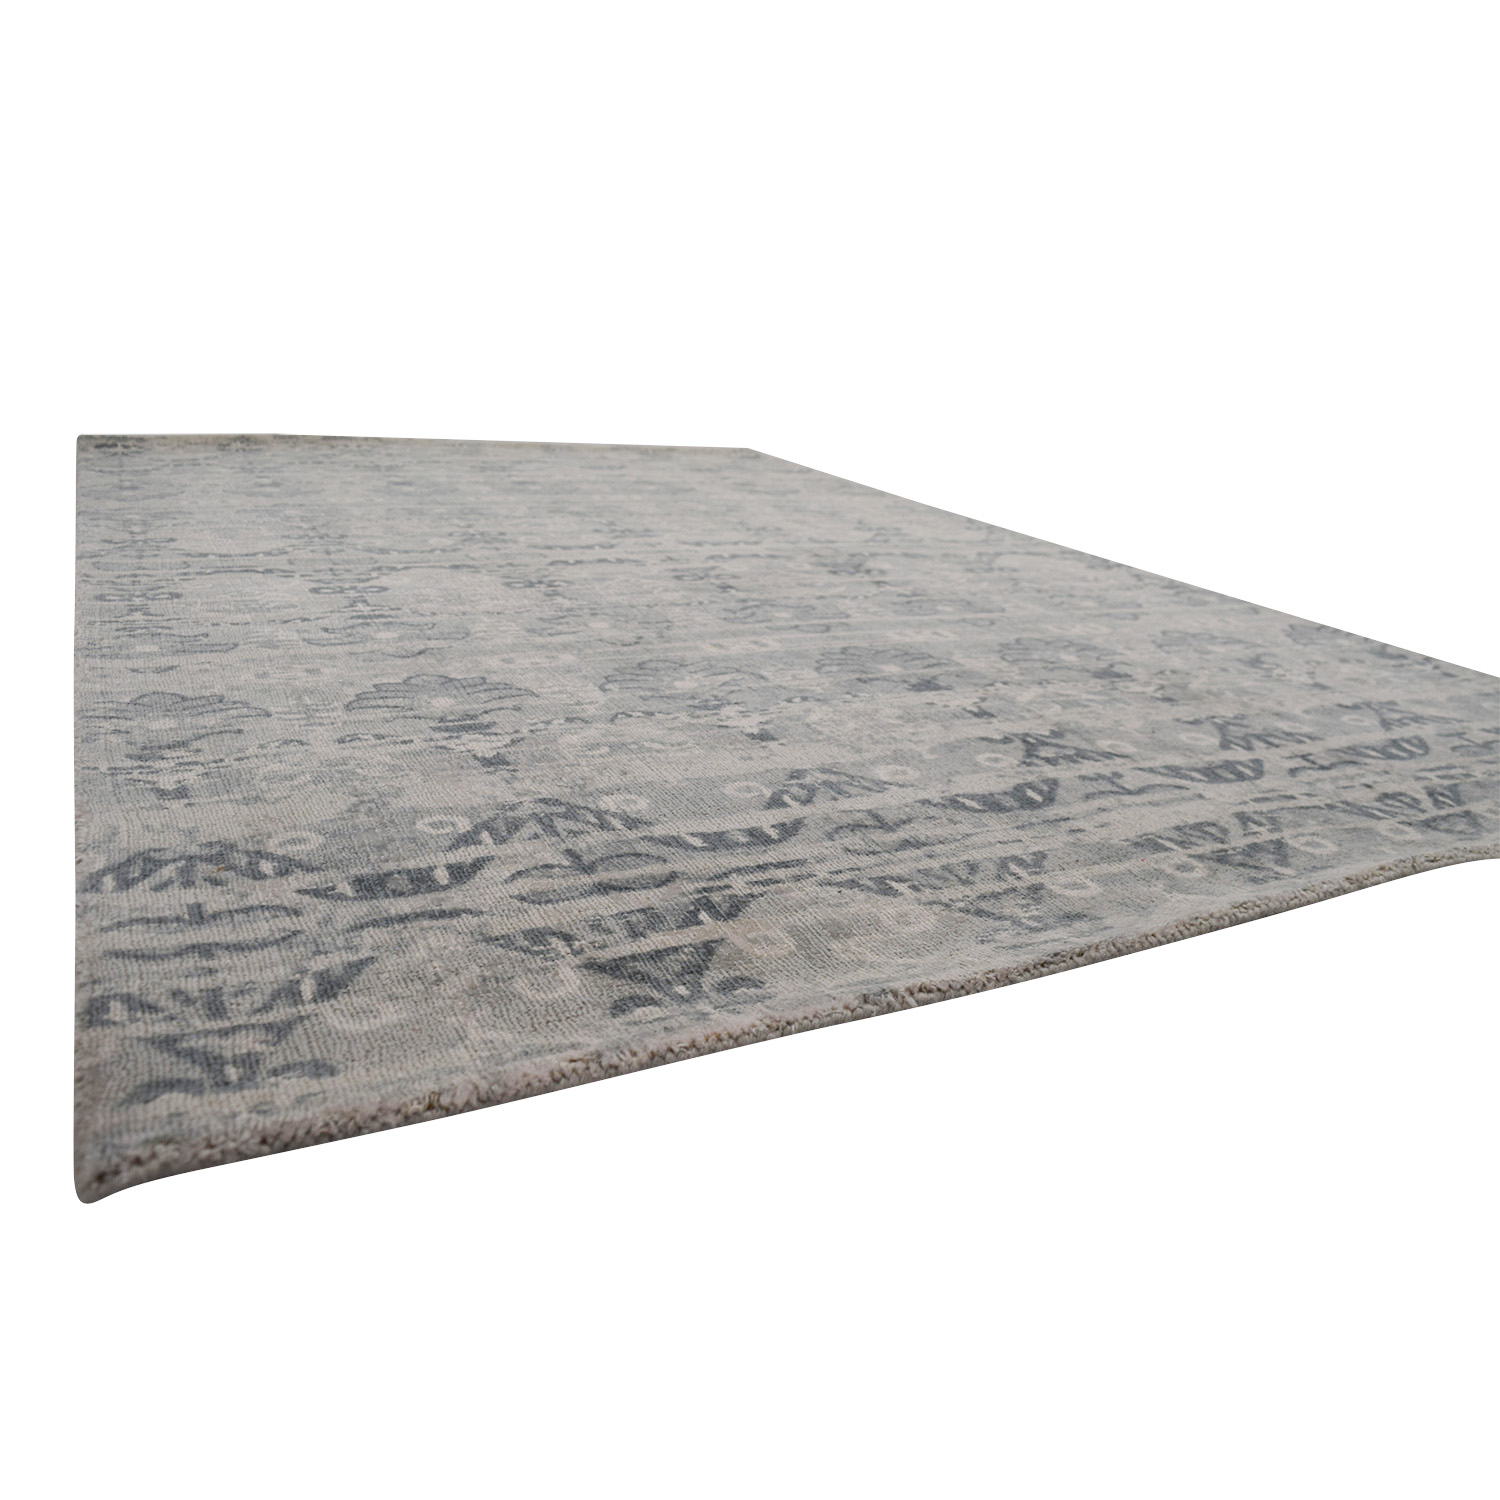 Obeetee Obeetee Gray Pattern Rug for sale